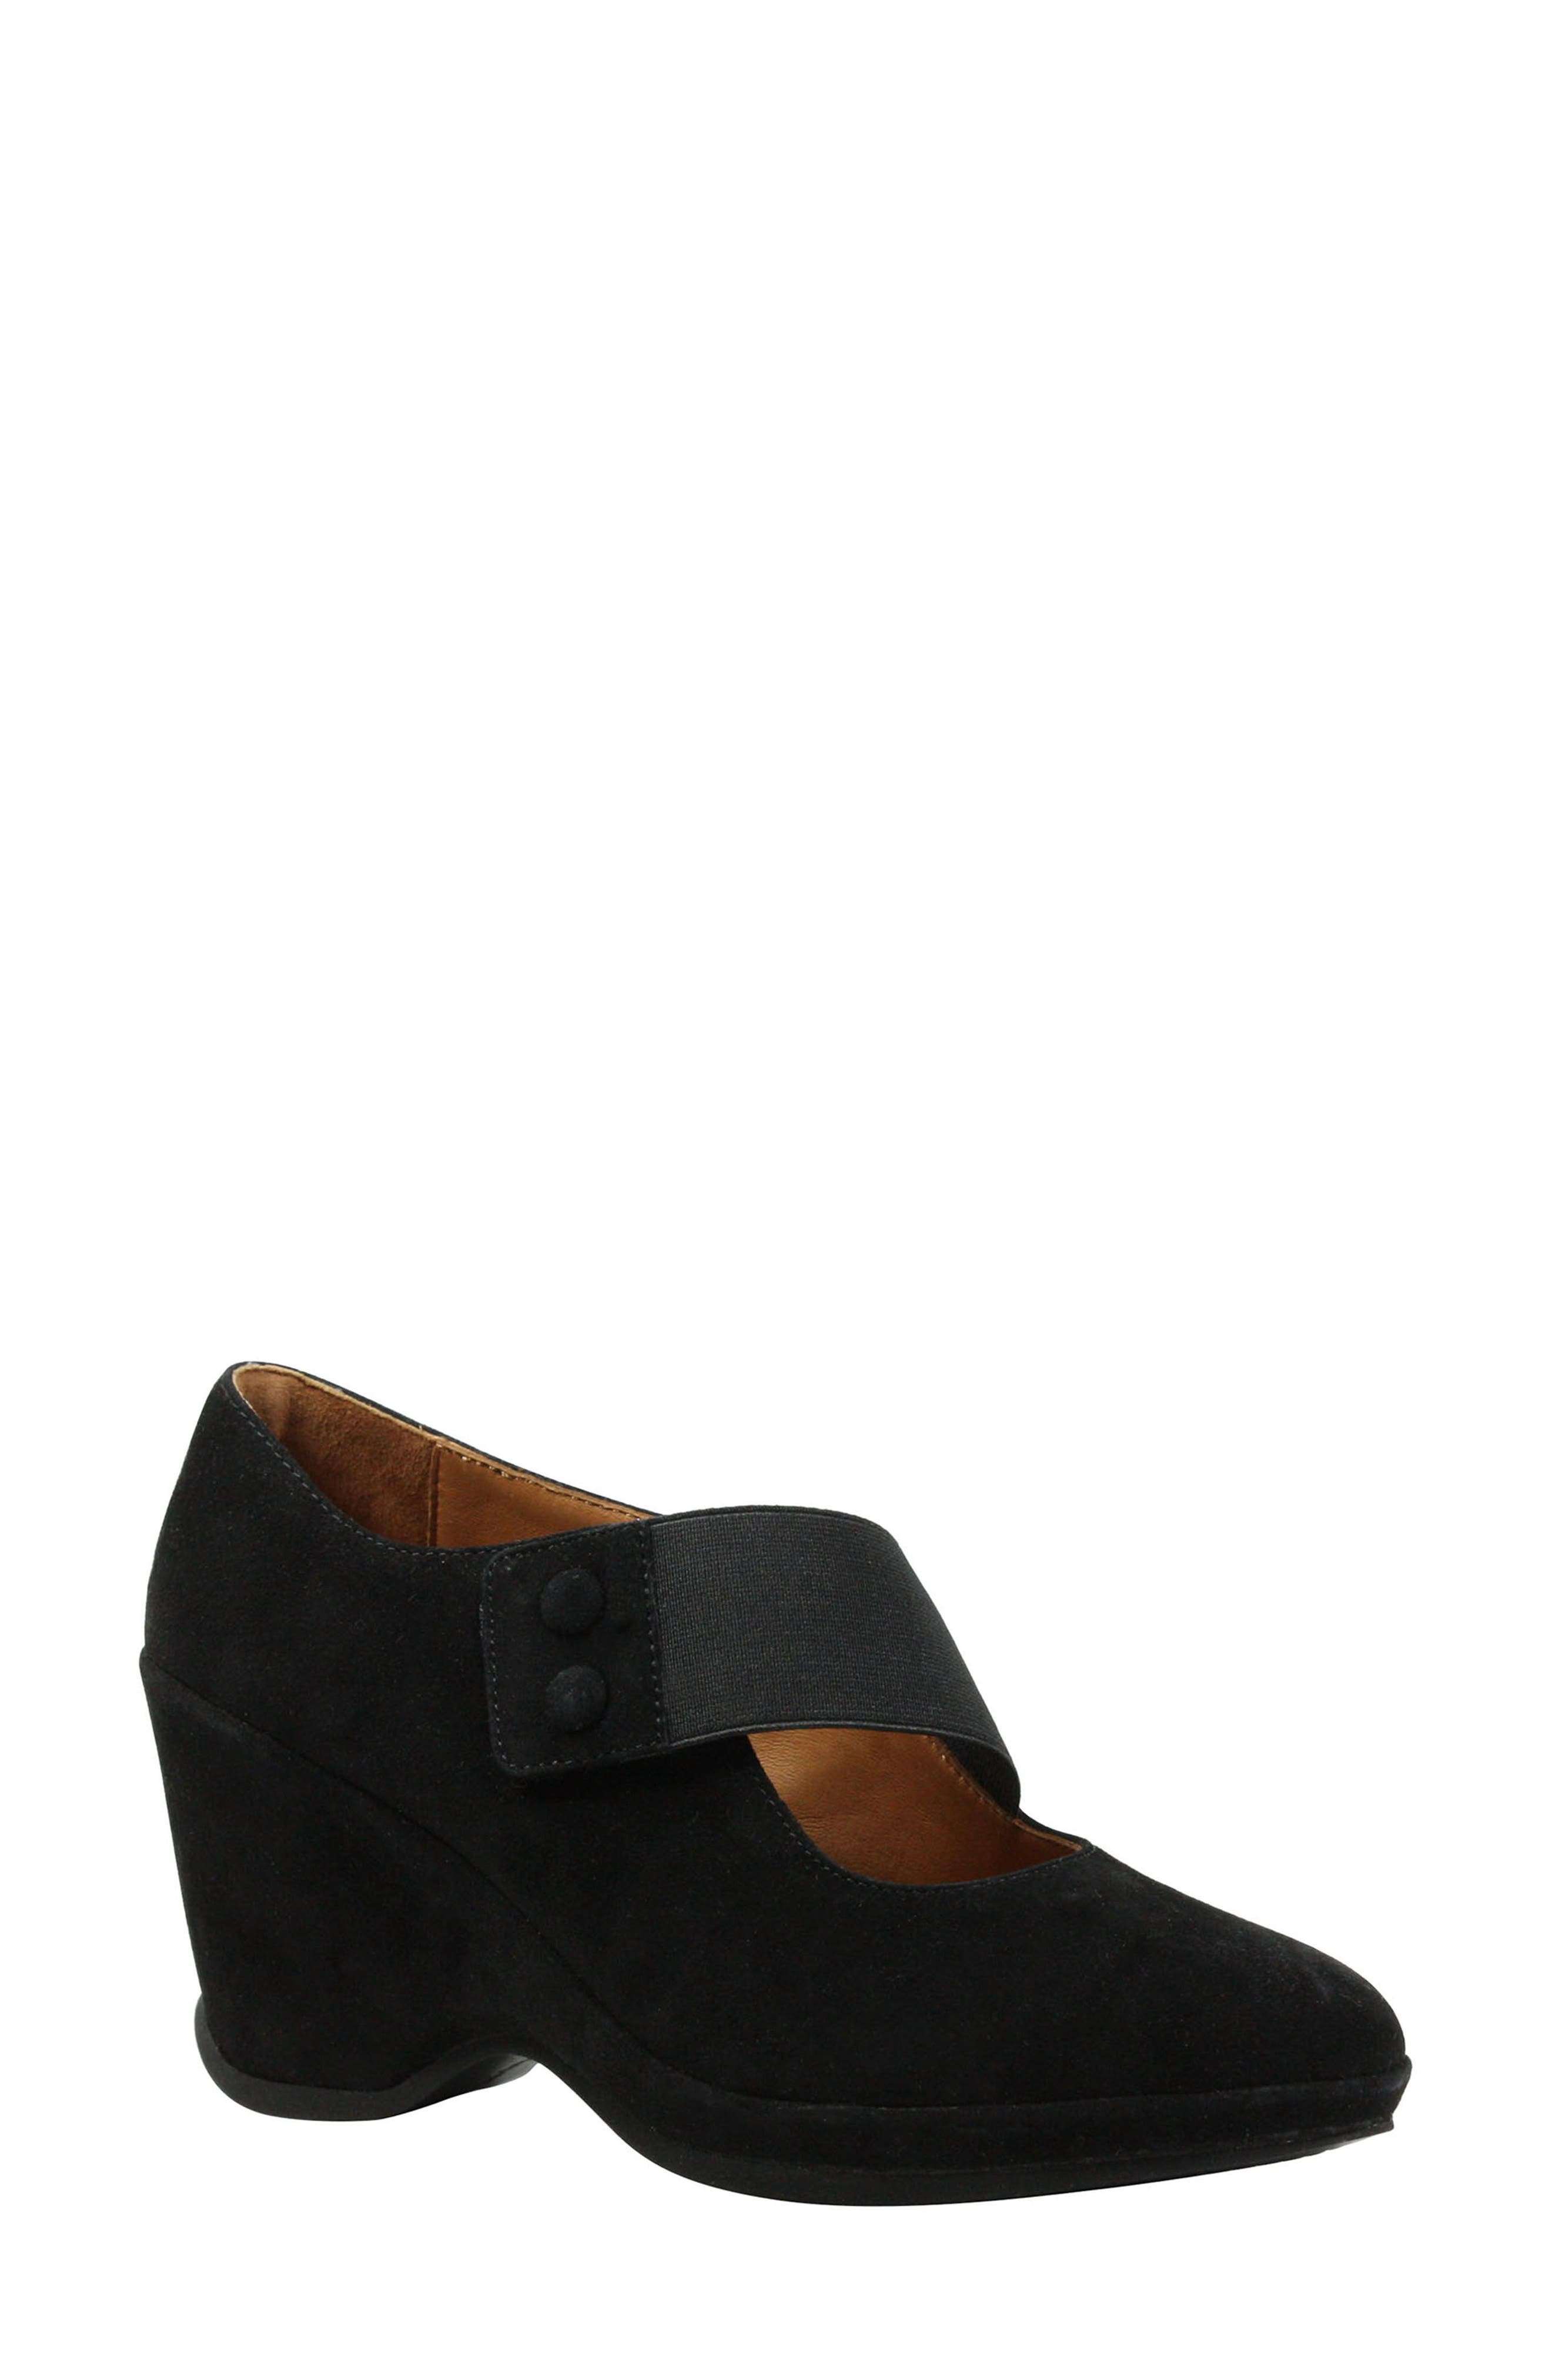 Oriana Wedge,                             Main thumbnail 1, color,                             Black Suede